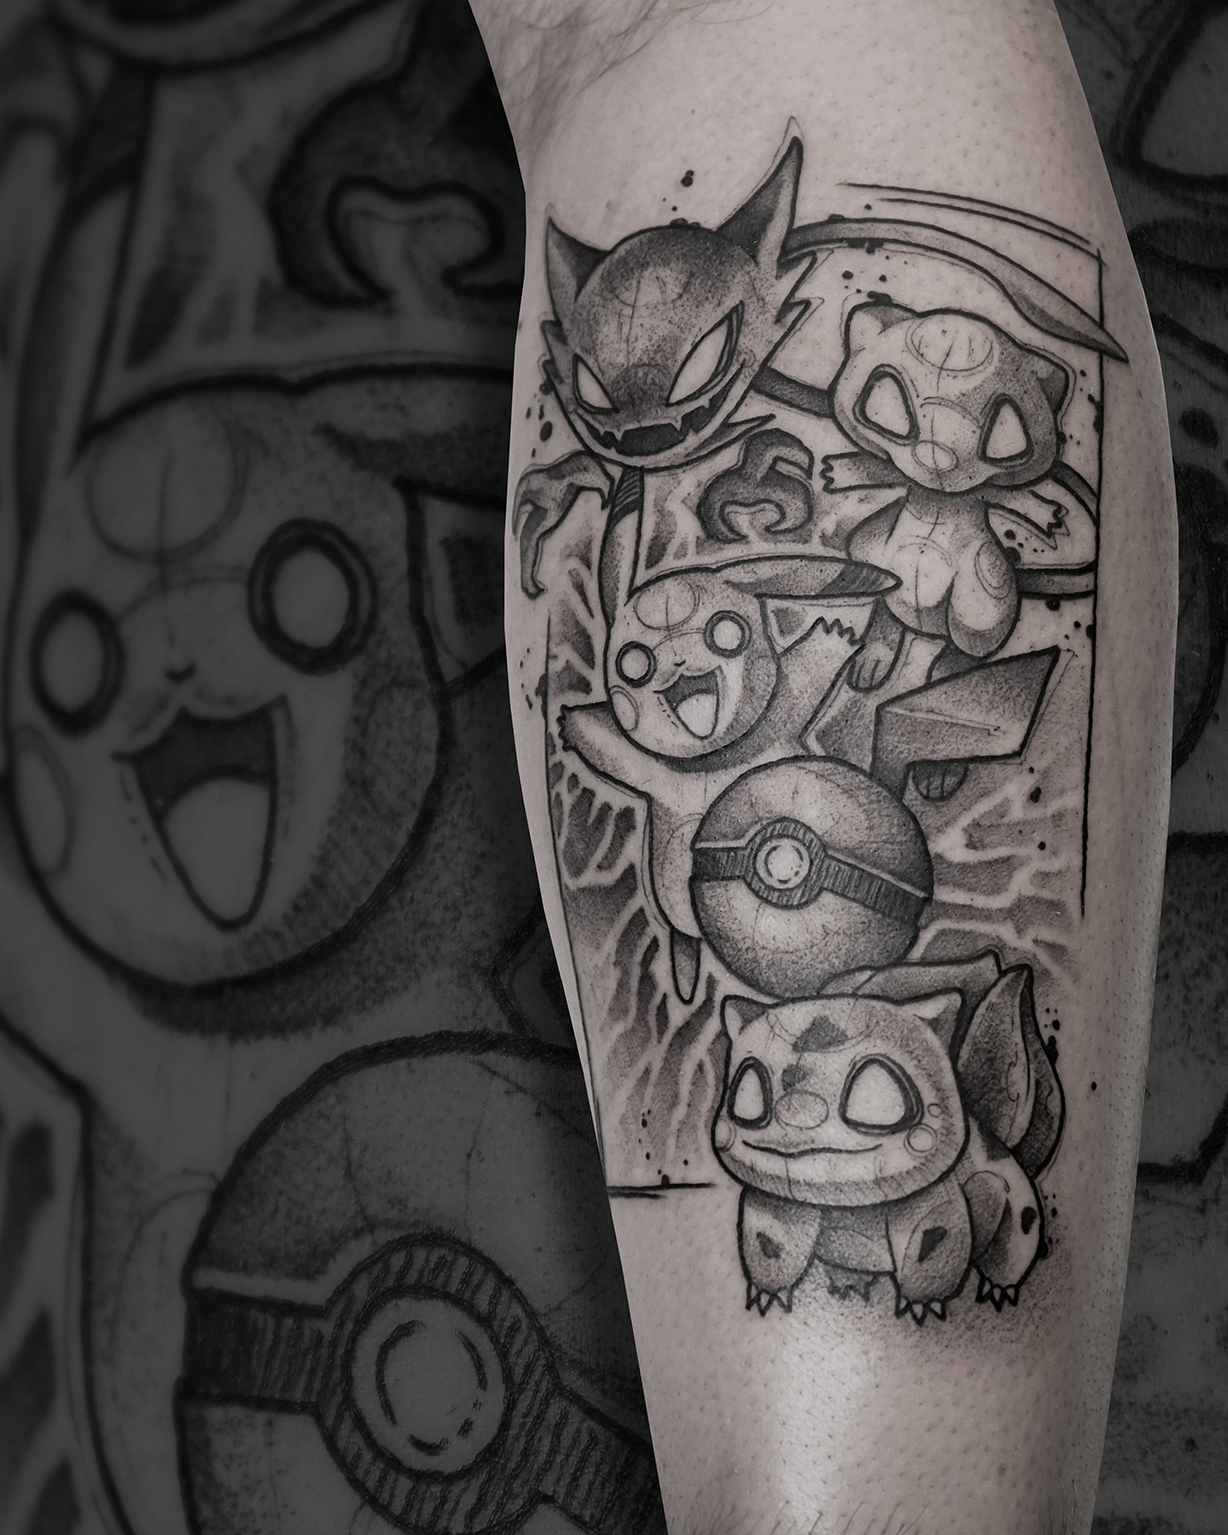 Tattoo Zincik - Pokemon black tattoo